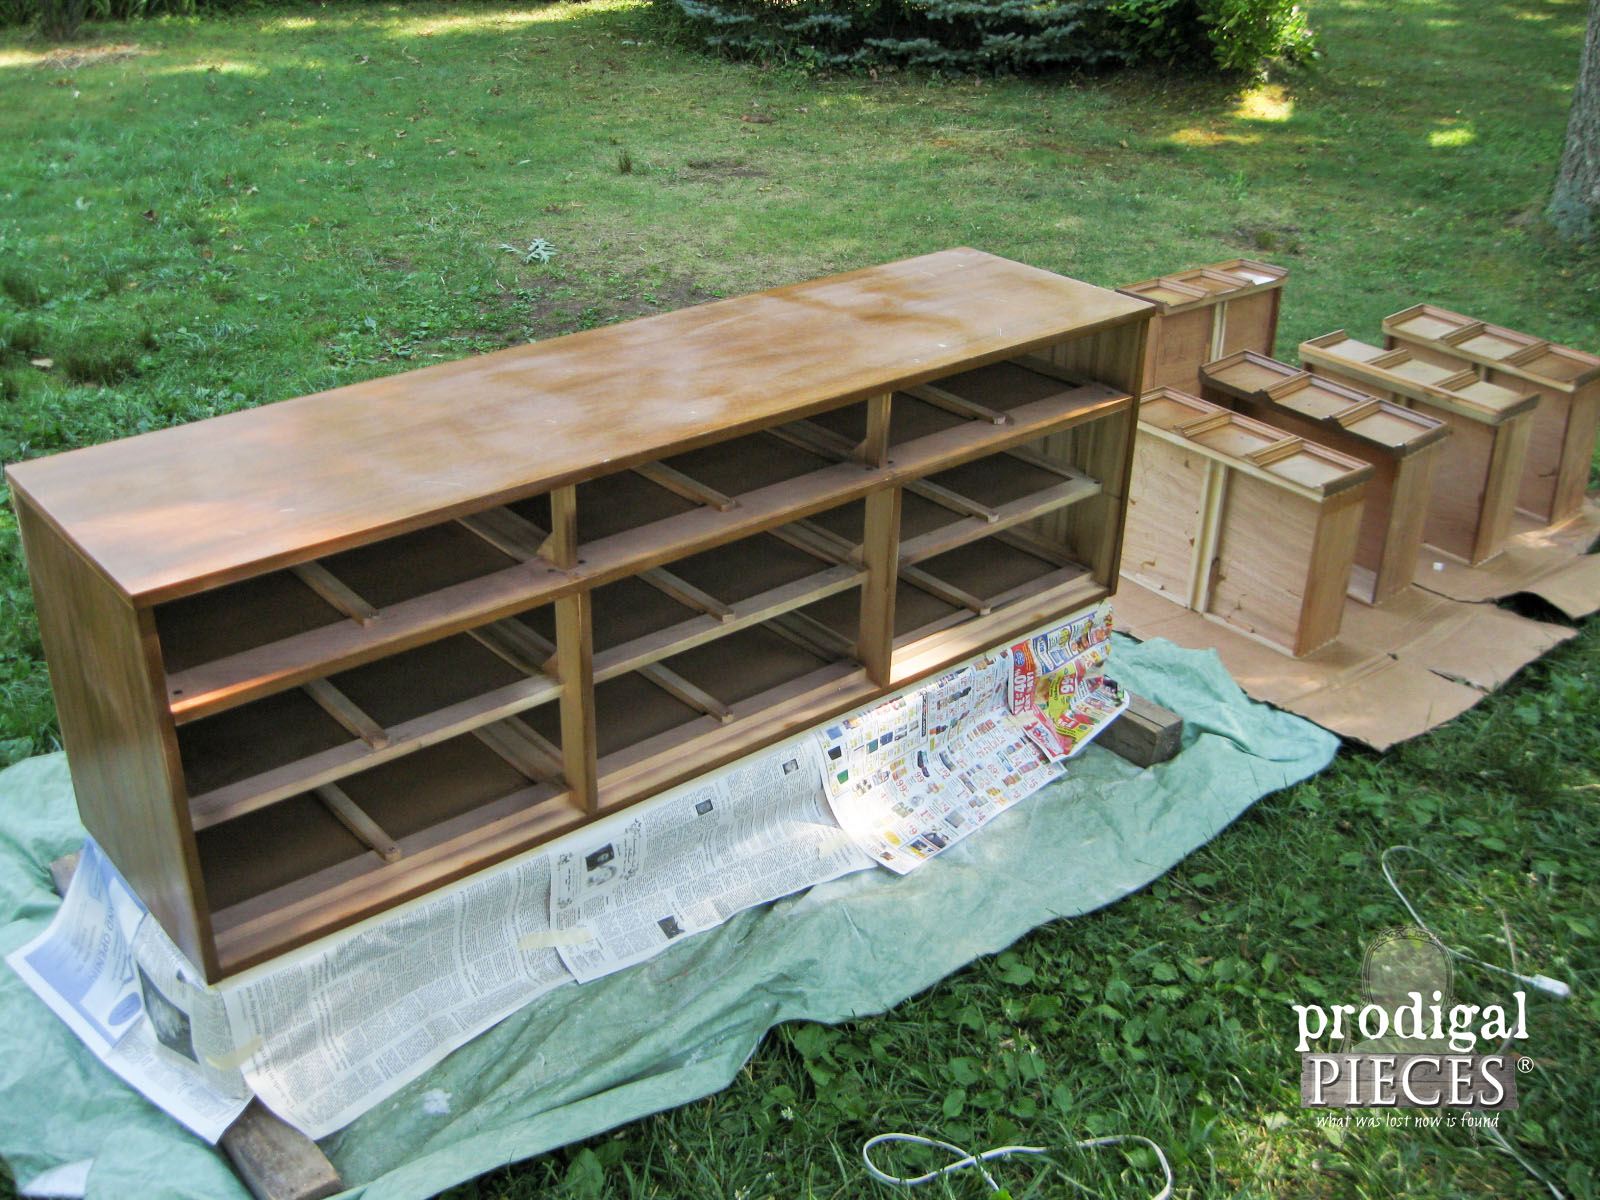 Preparing Mid Century Dixie Dresser for Spray Paint | Prodigal Pieces | www.prodigalpieces.com